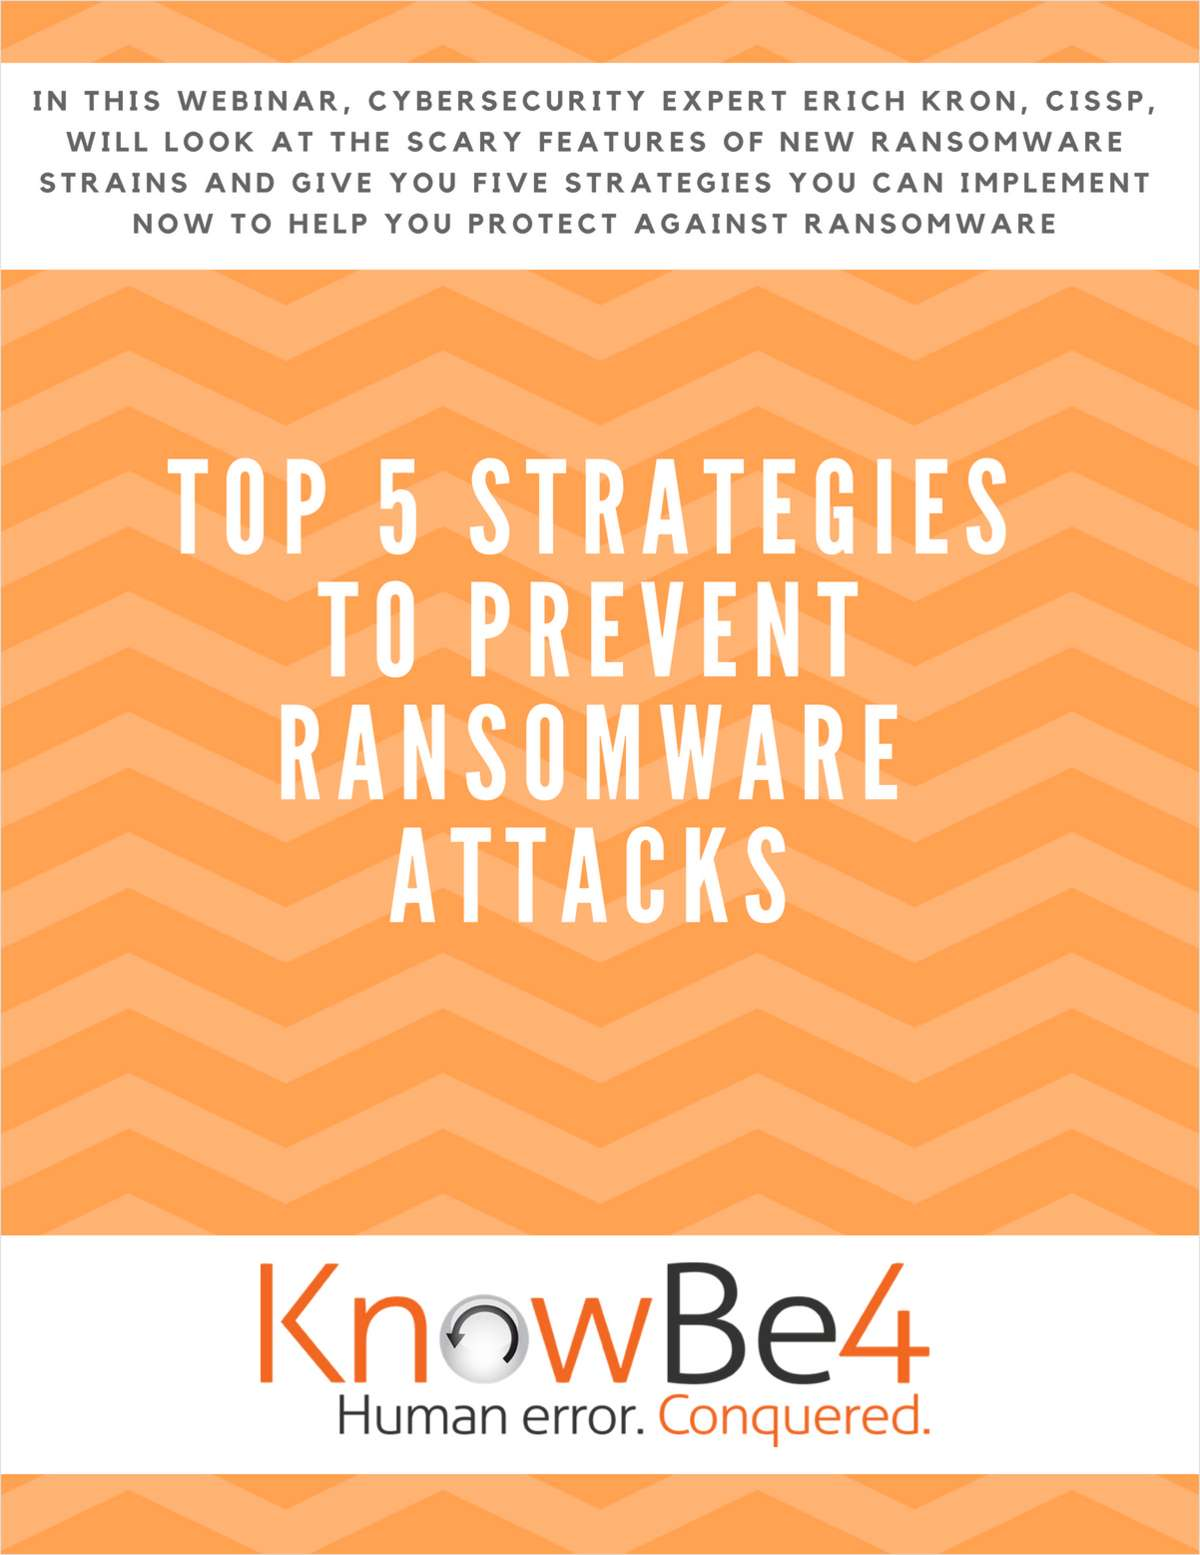 Top 5 Strategies to Prevent Ransomware Attacks